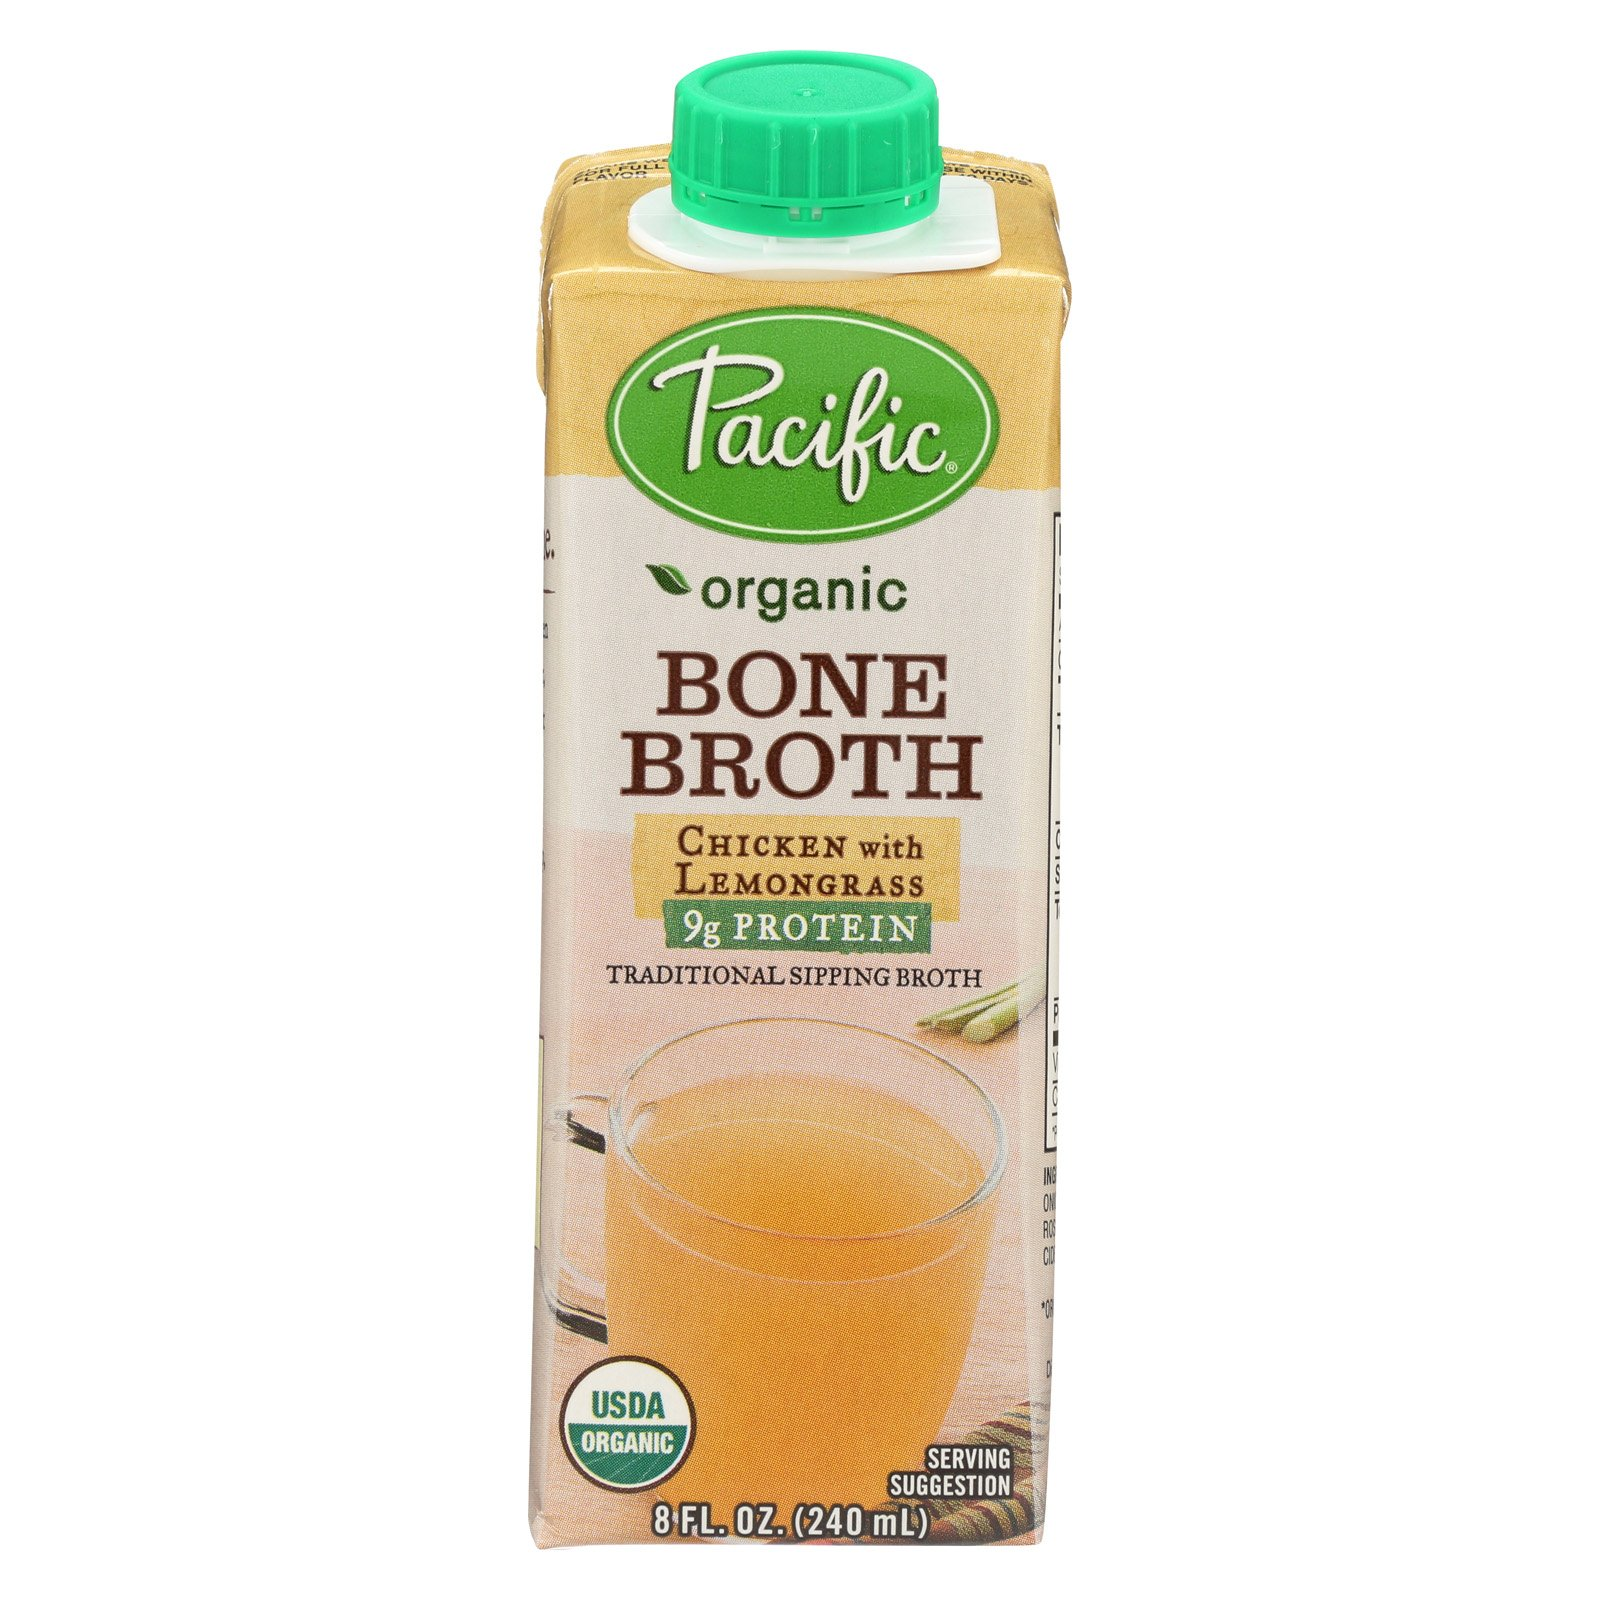 Pacific Natural Foods Bone Broth - Chicken with Lemongrass - Case of 12 - 8 Fl oz.